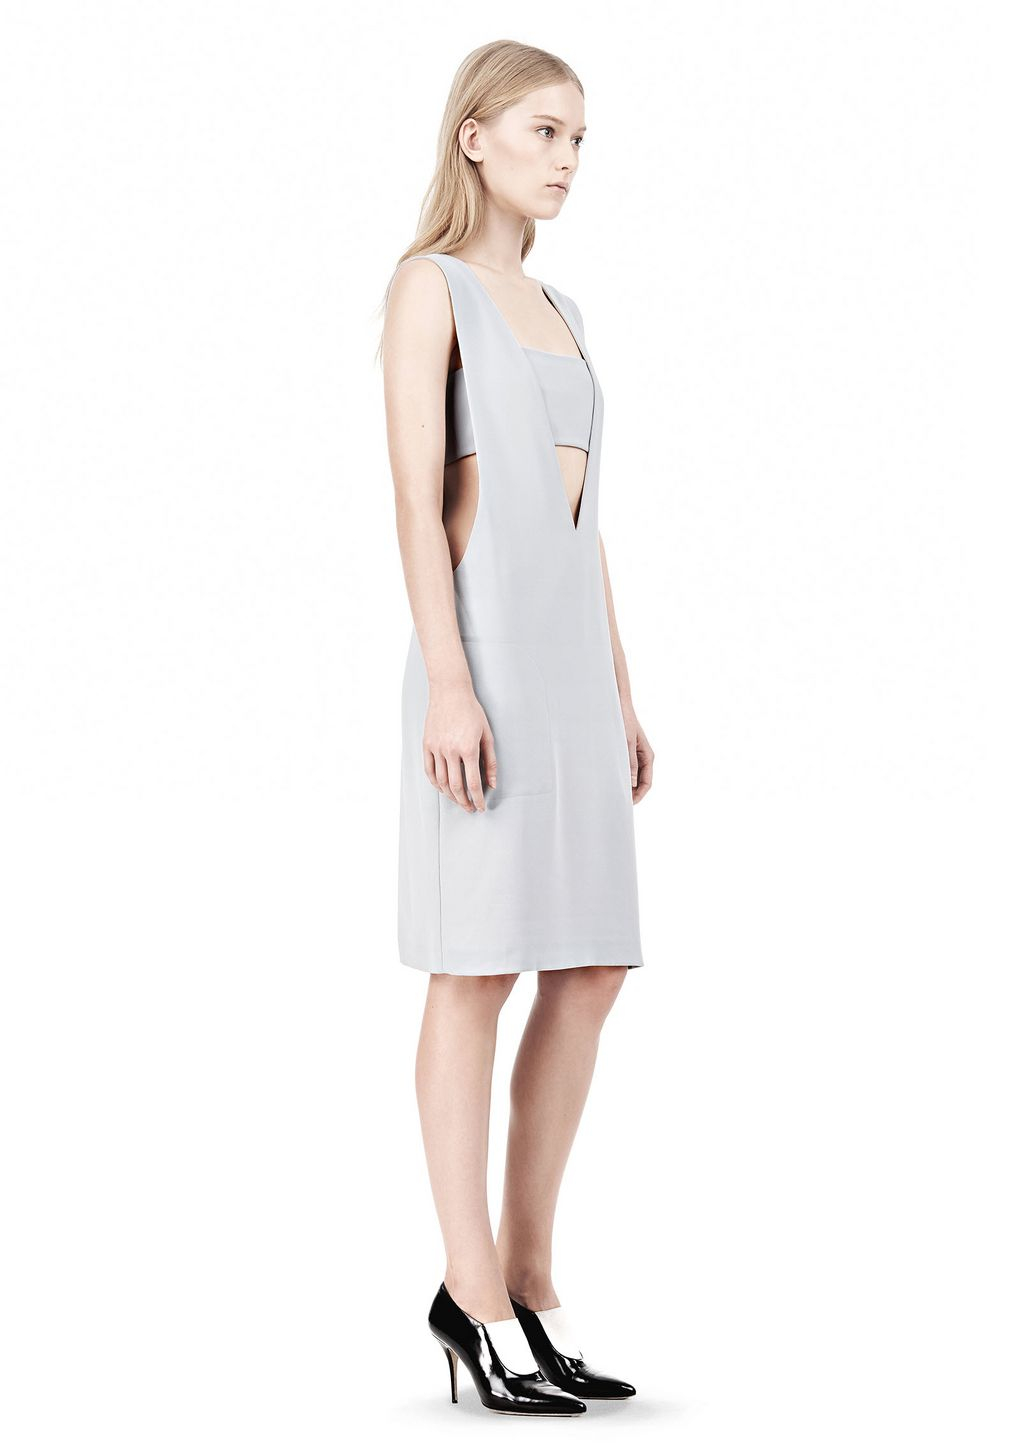 Lyst - Alexander Wang Poly Crepe Low Vneck Dress with Bandeau Insert ... 2abc77c93